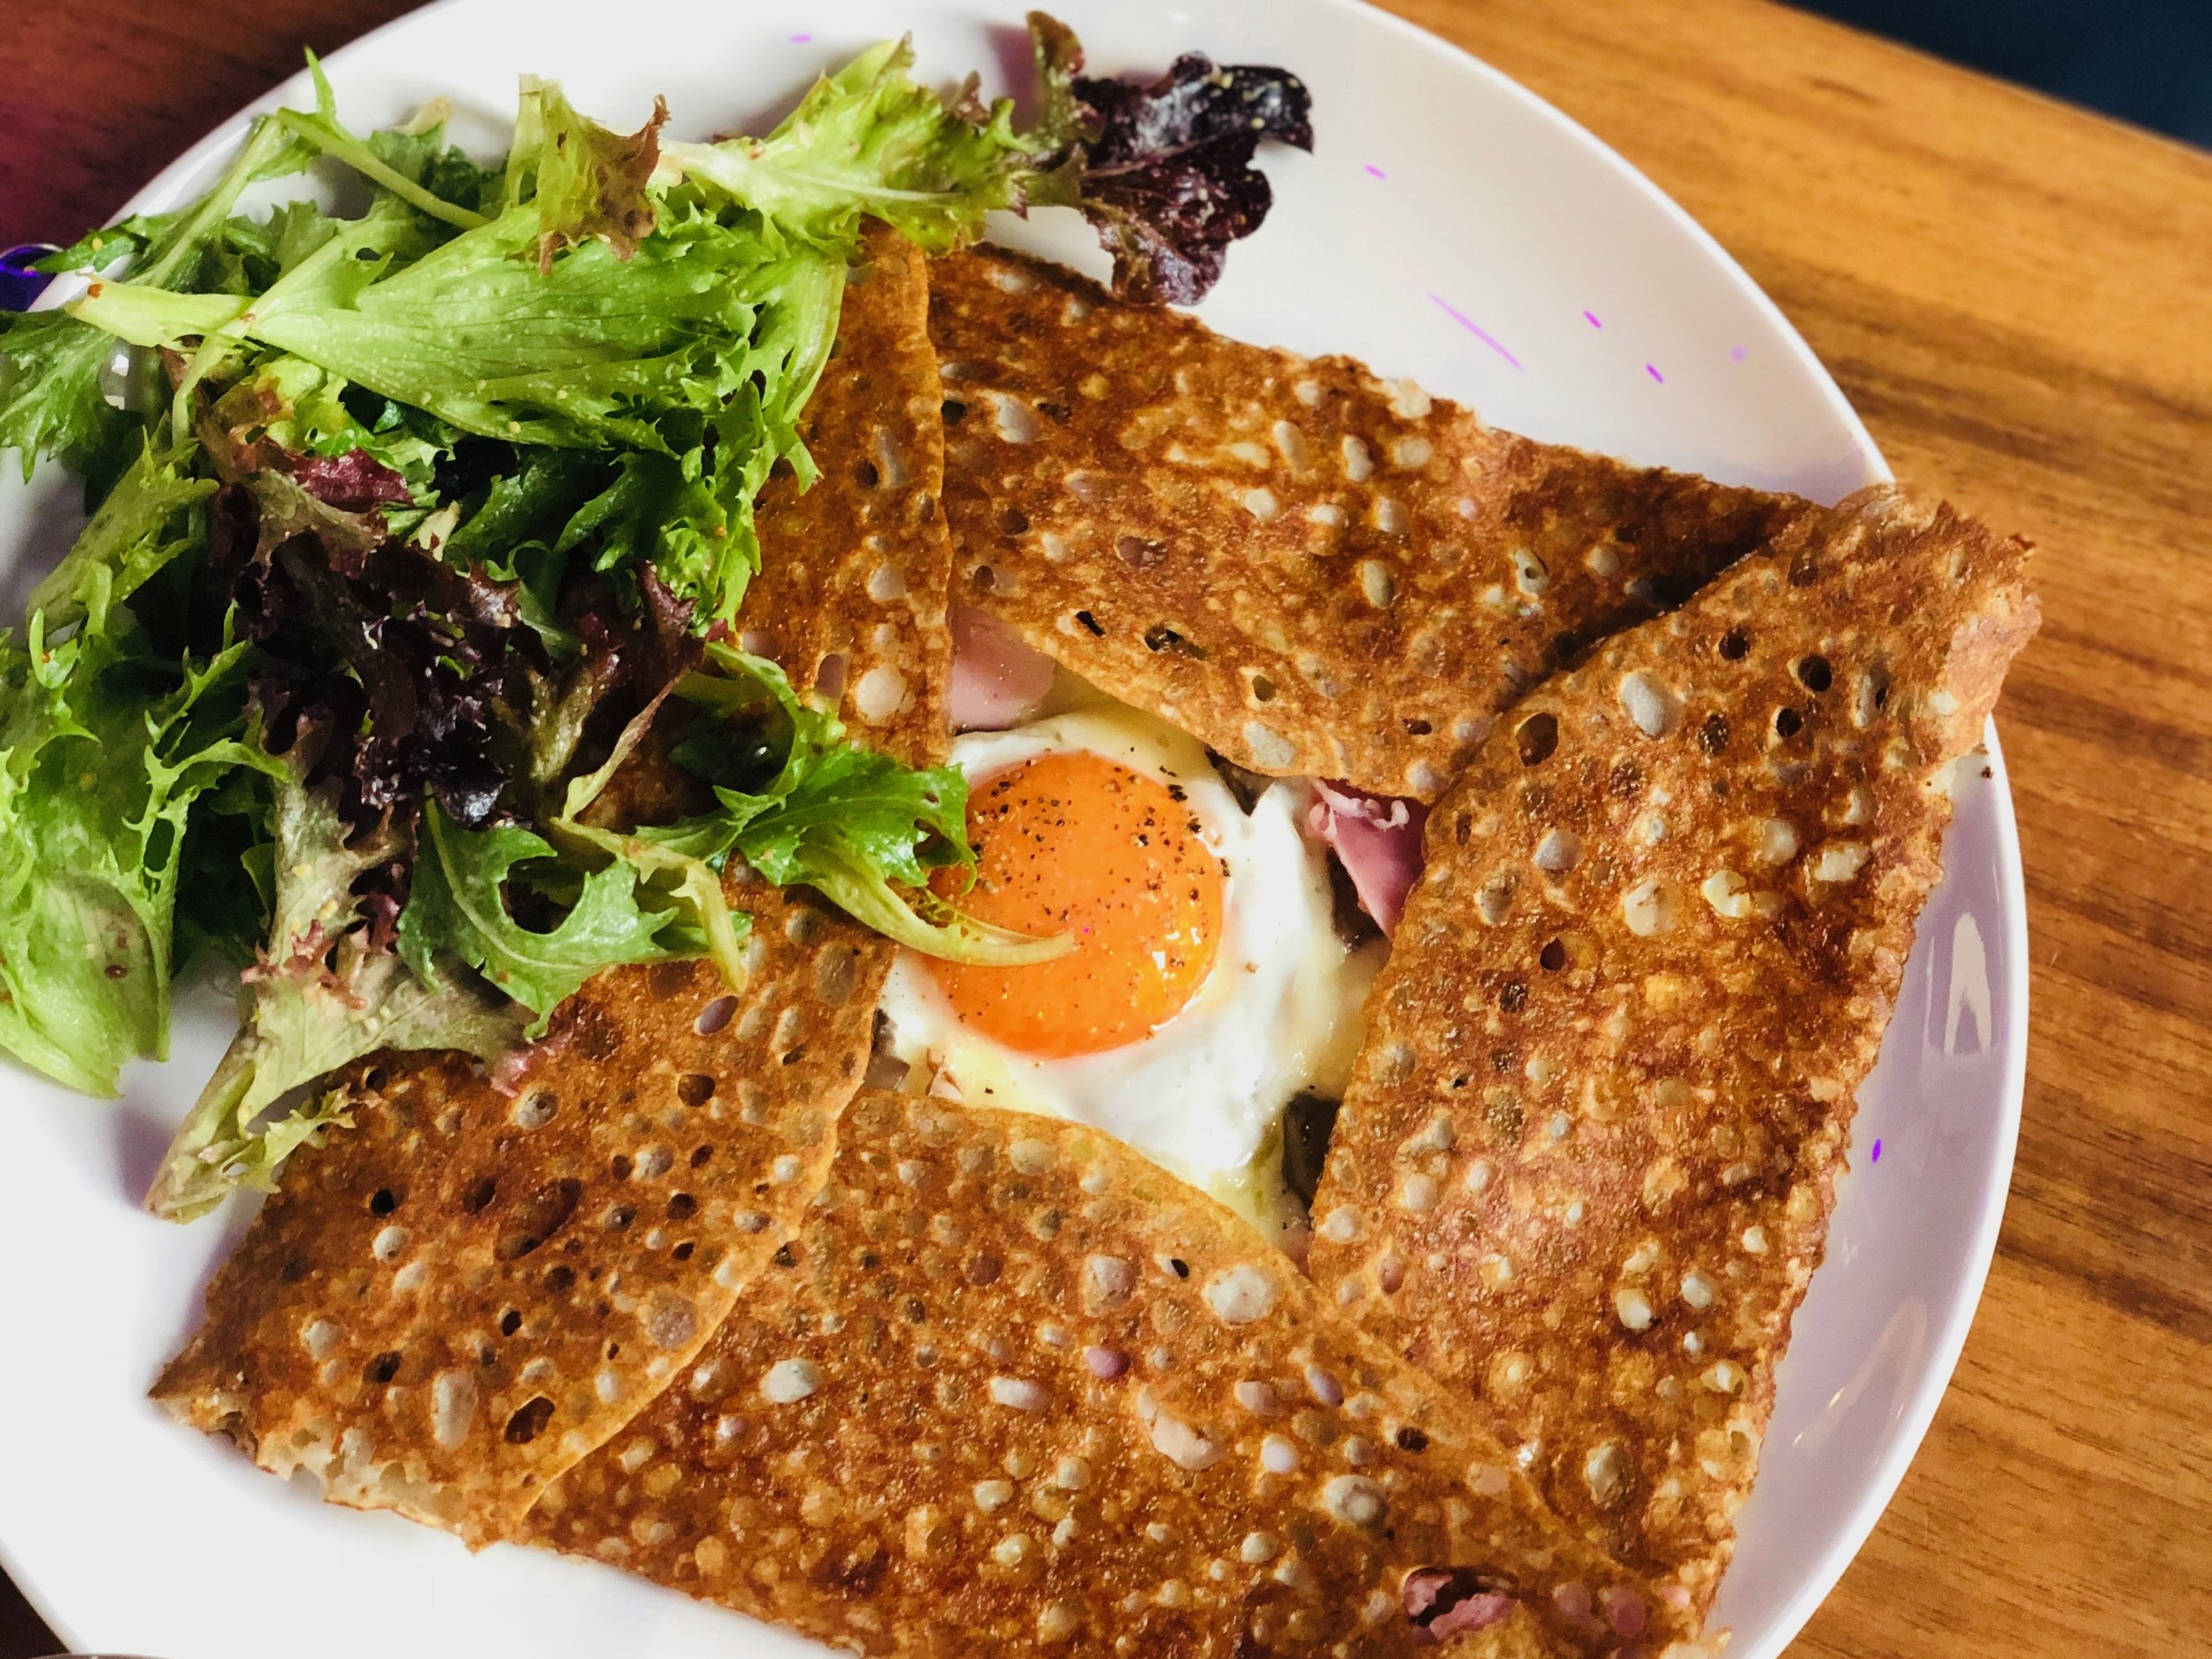 Ham and Egg Galette from Roule Galette